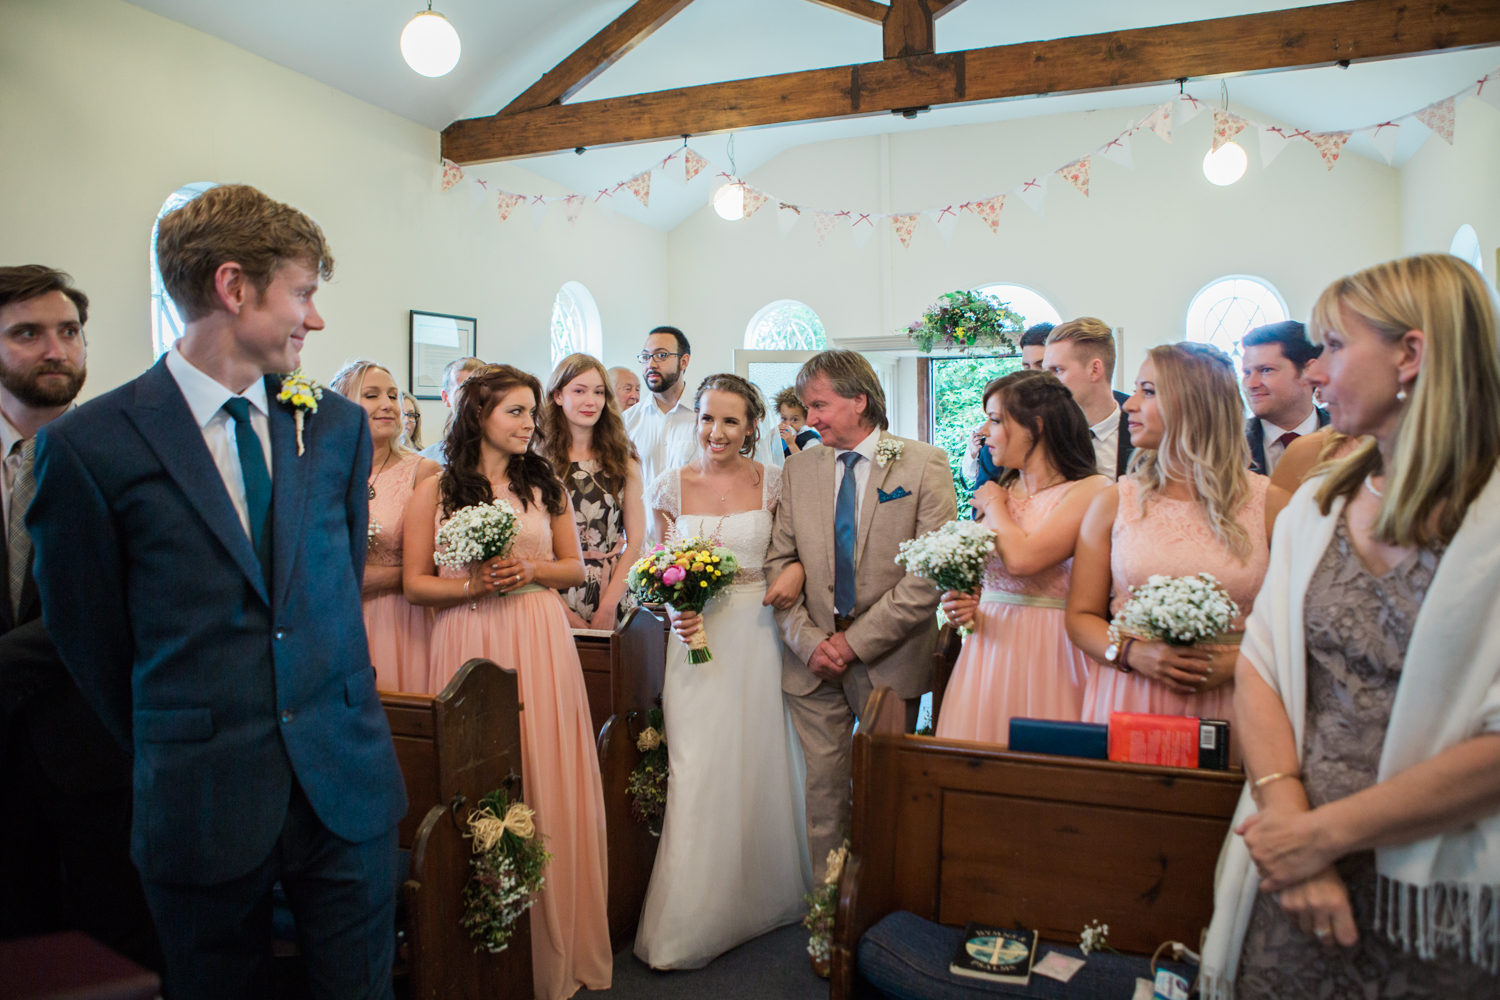 044Lotti & Dave marquee wedding Sophie Evans Photography West Midlands reportage wedding photography.jpg